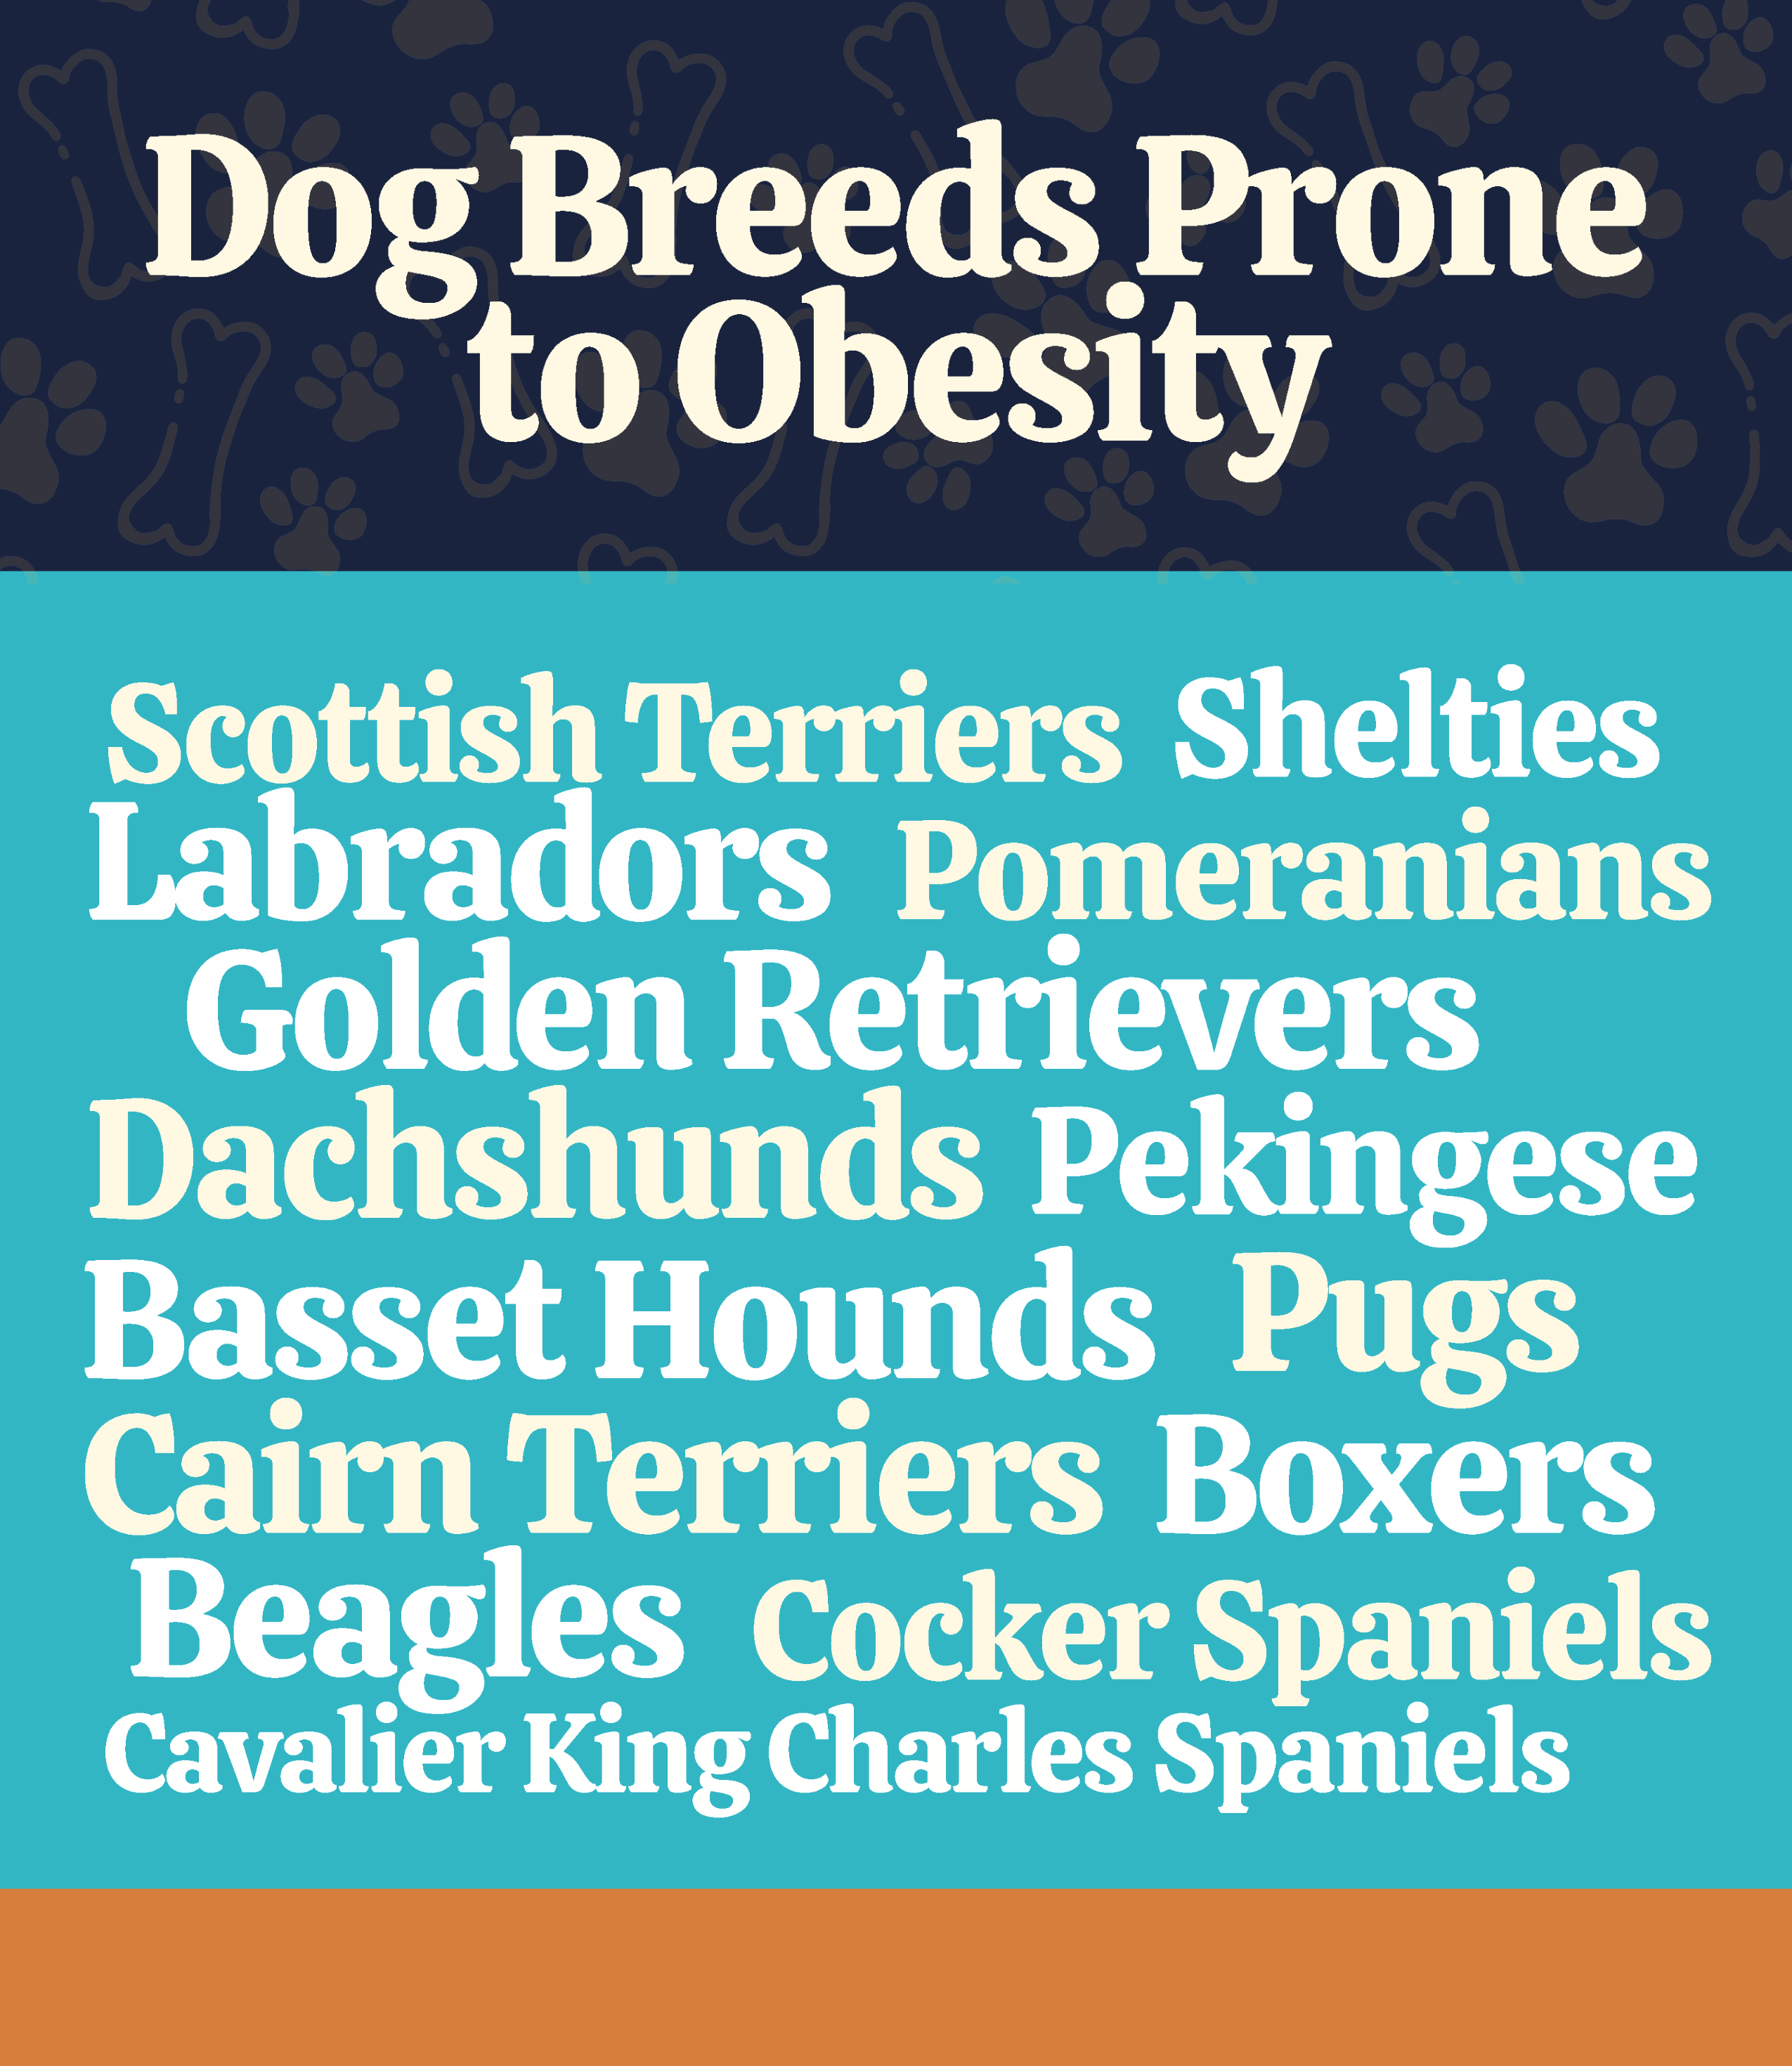 dogs-prone-to-obesity